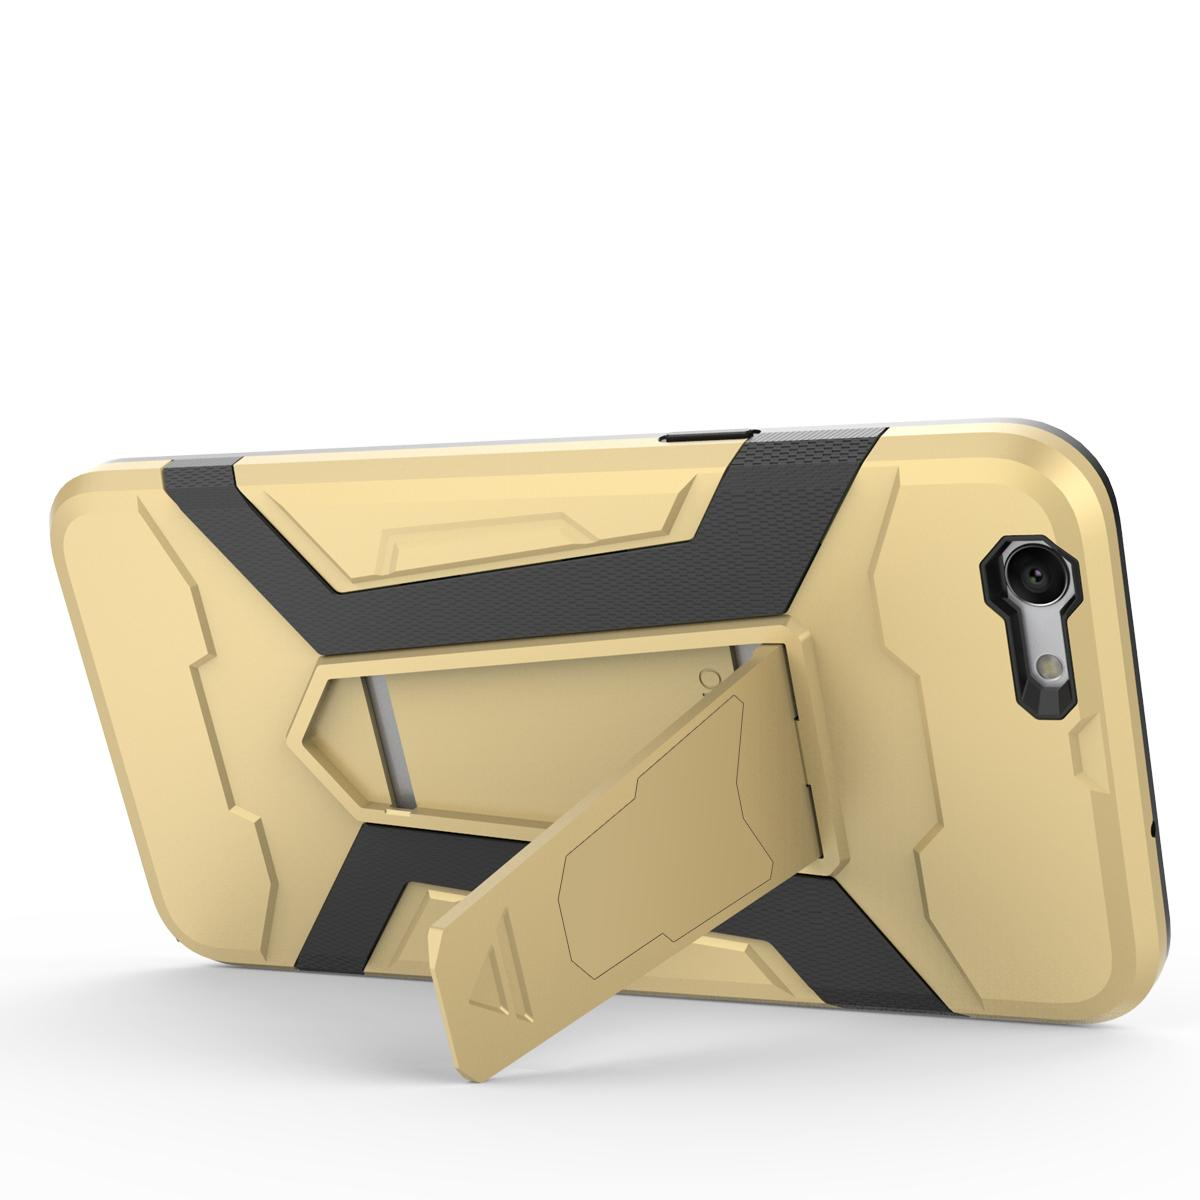 Case Iron Man for Oppo A57 / OPPO A57 Robot Transformer Ironman Limited .